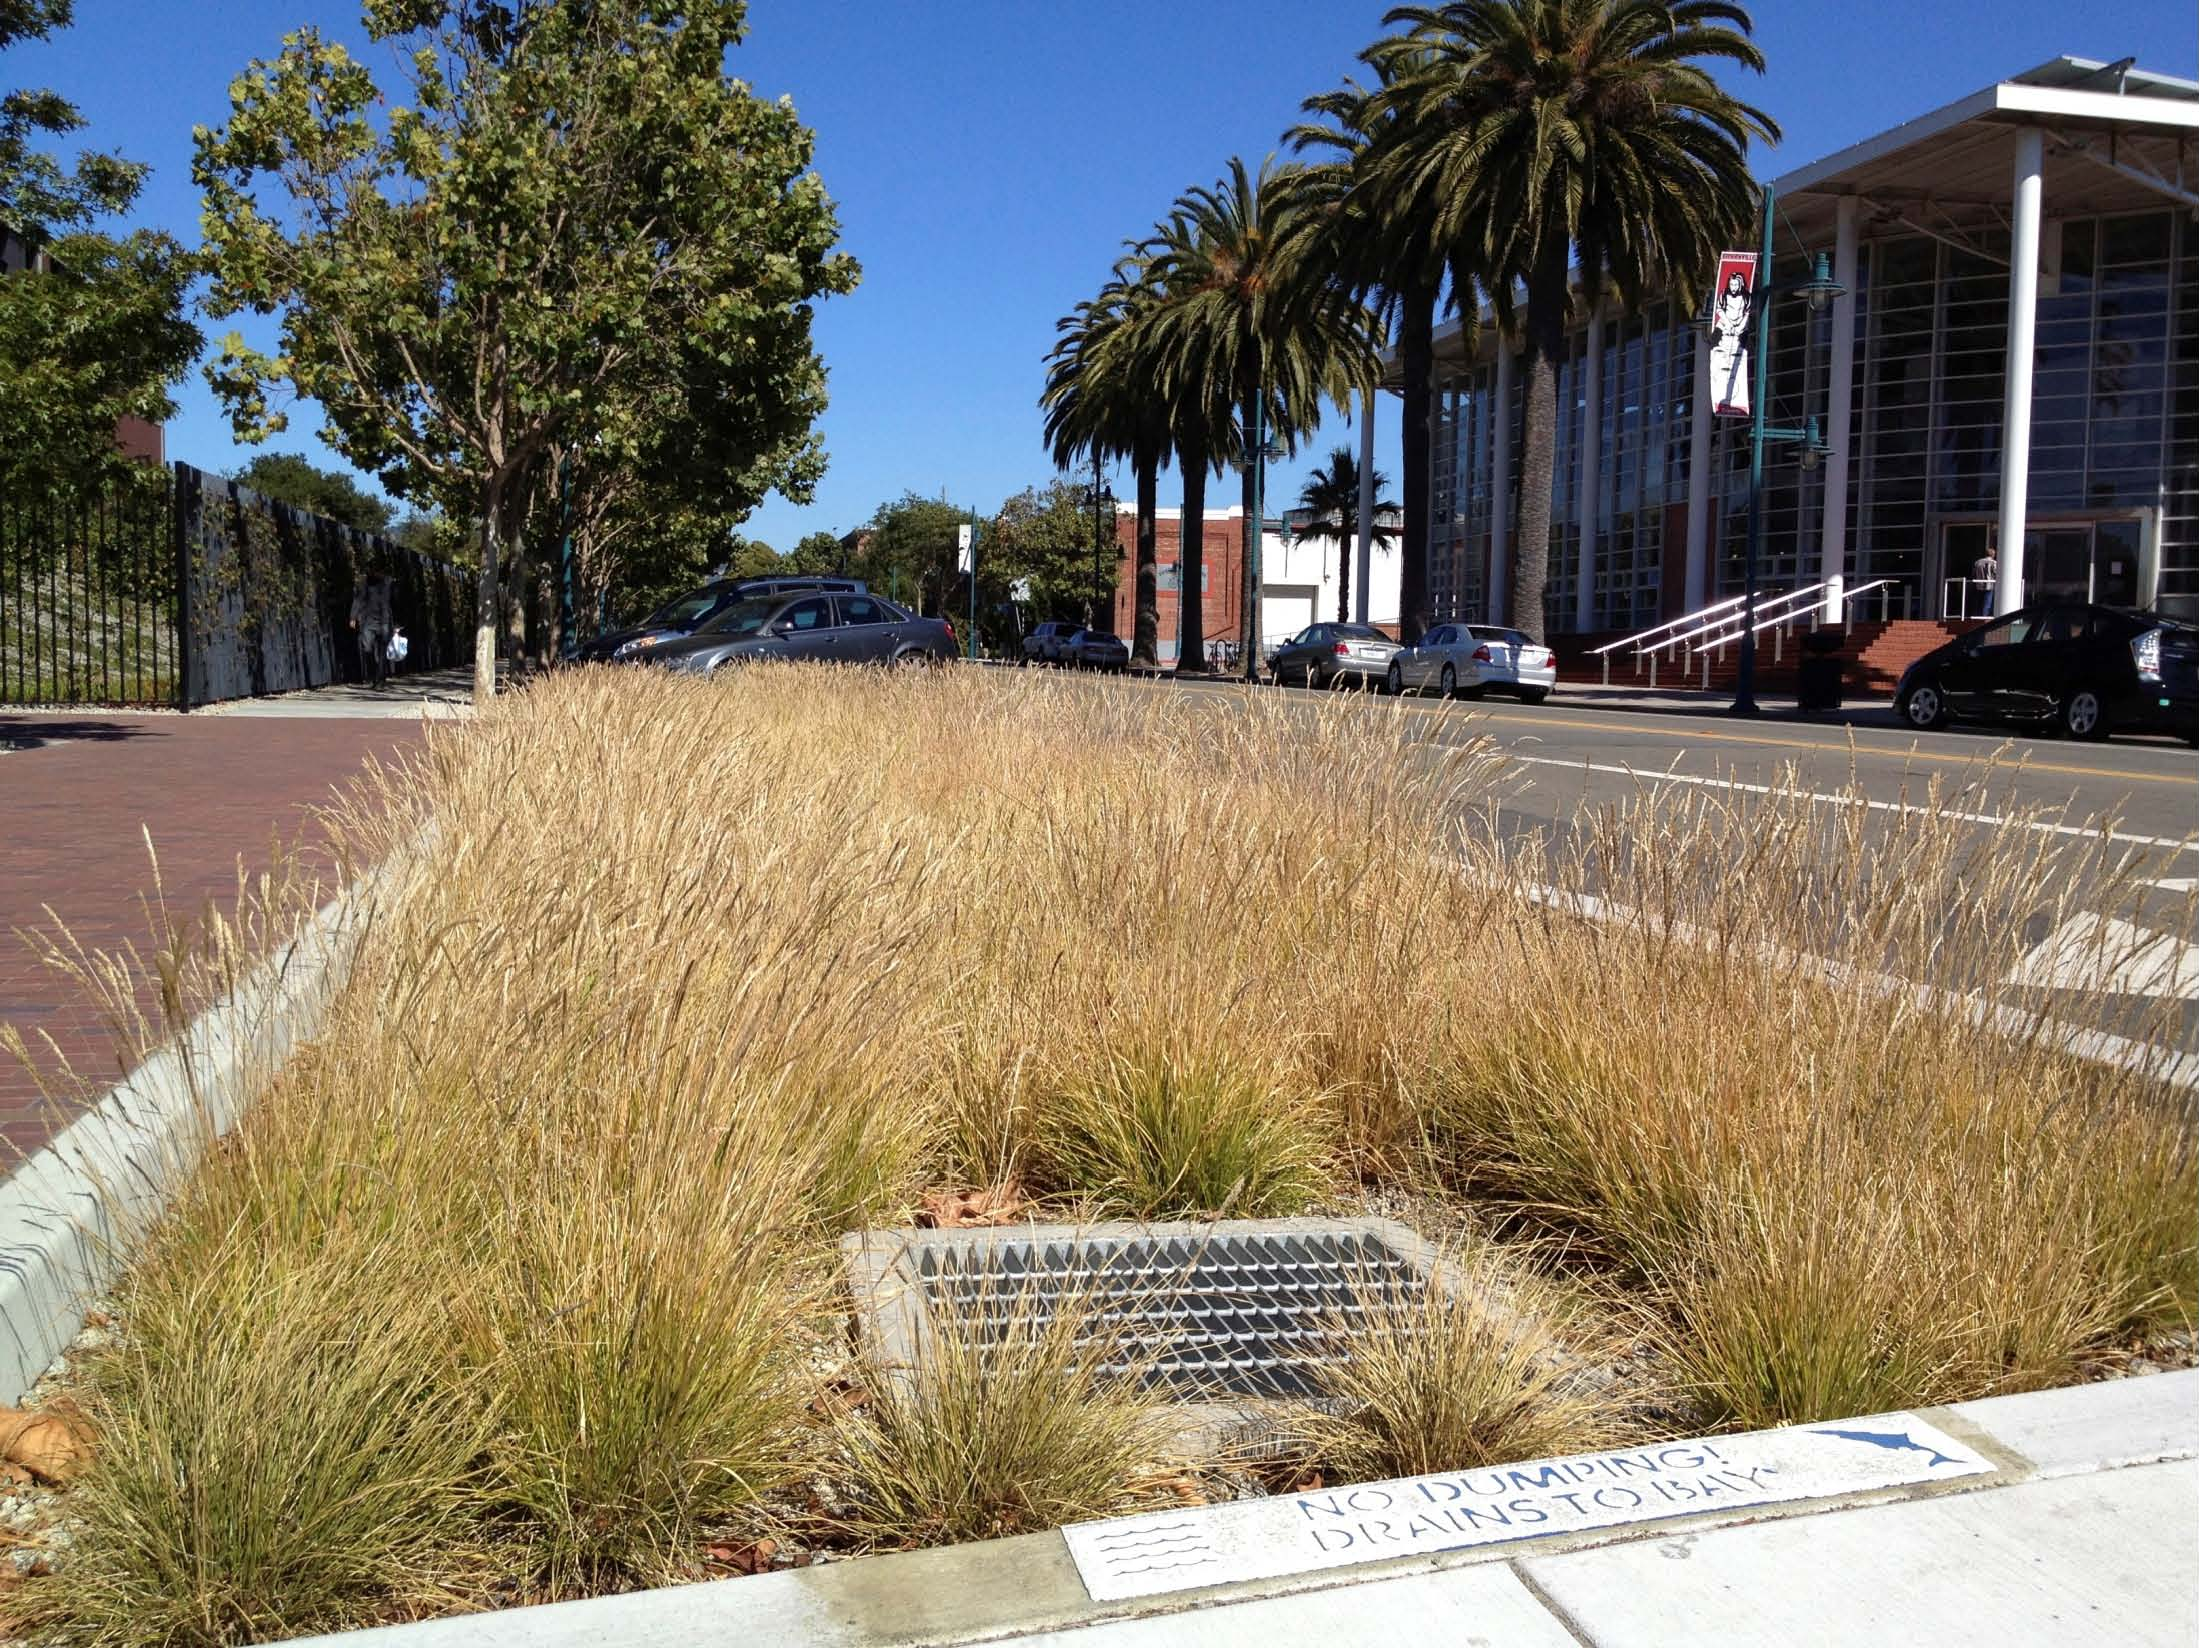 Implementing LID and Green Infrastructure Best Management Practices